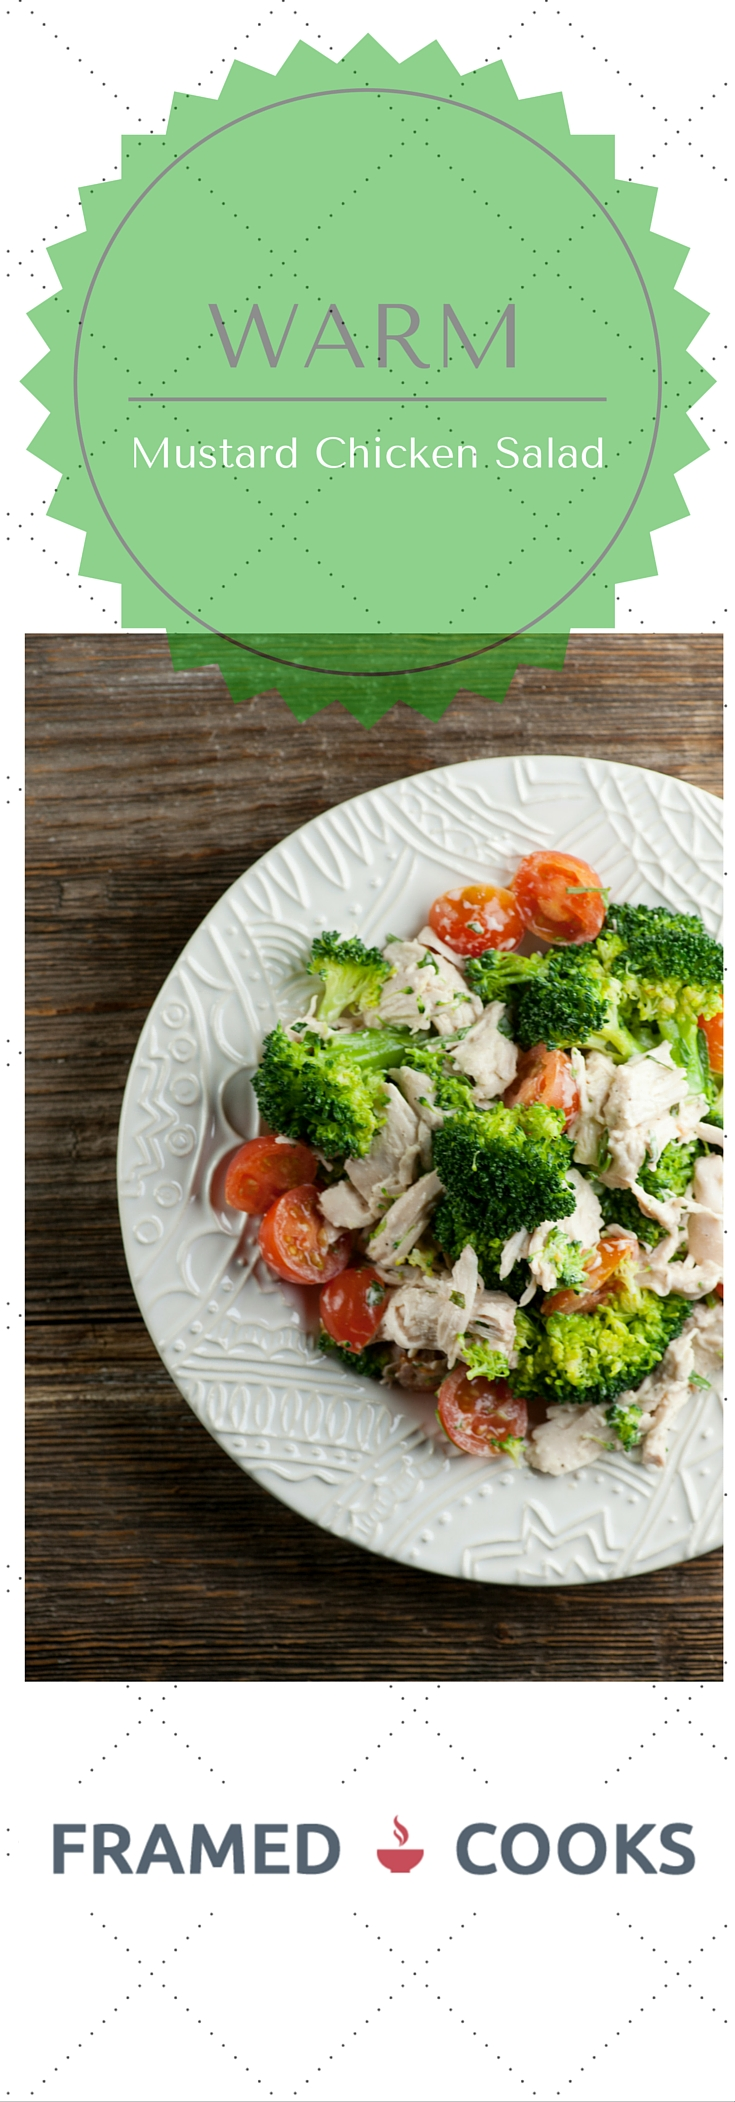 This warm mustard chicken salad recipe is perfect for when you are craving salad on a chilly day!